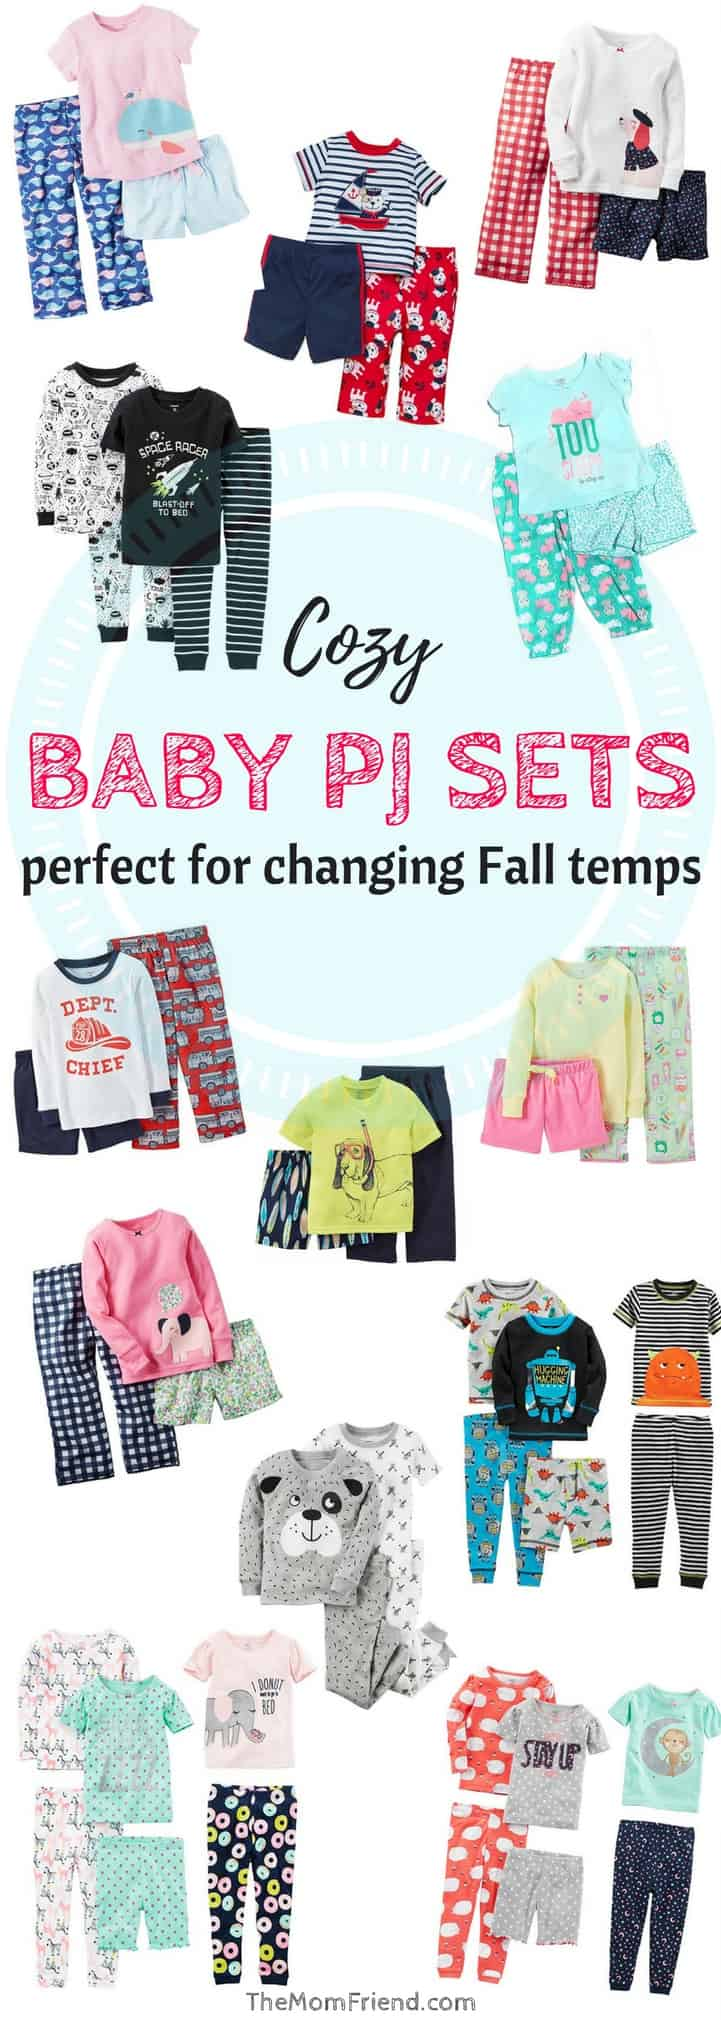 Fall brings constantly changing temperatures, and can make dressing babies and toddlers for sleep difficult. Check out these adorable PJ sets that are perfect for whatever the day (or night) might bring! | dressing baby for sleep | baby clothes | boy baby pjs | baby girl pjs | baby registry essentials | #babypjs